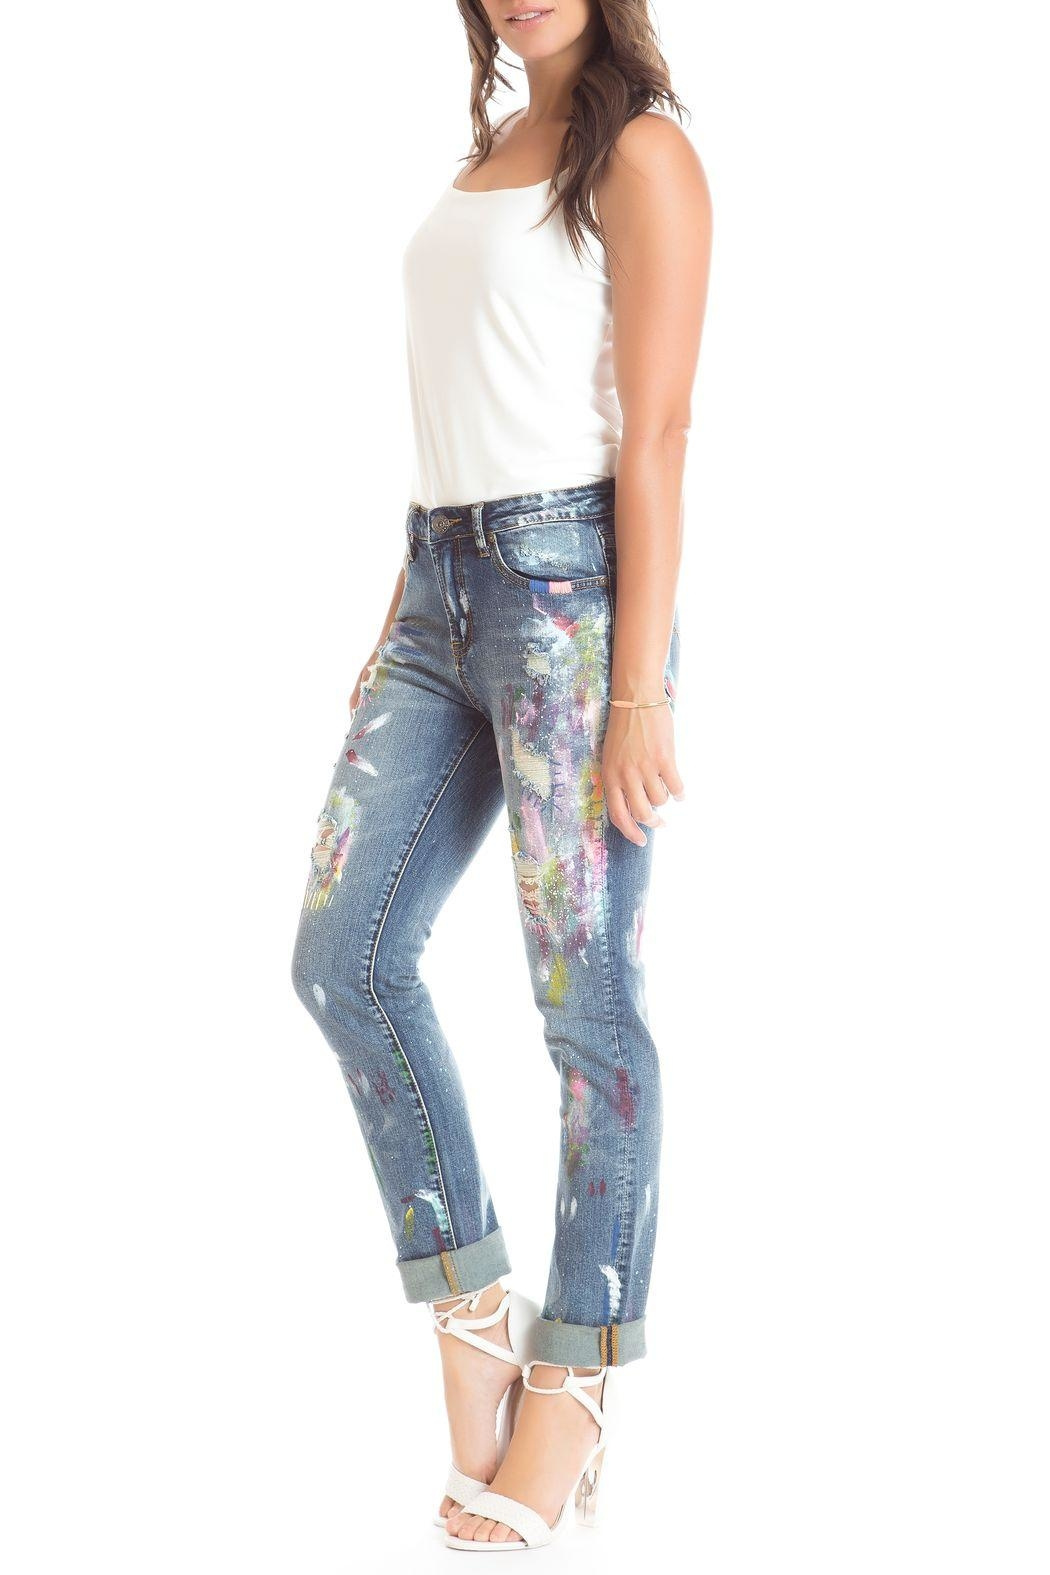 Cartise Skinny Painted Jeans From Canada By Via Monte